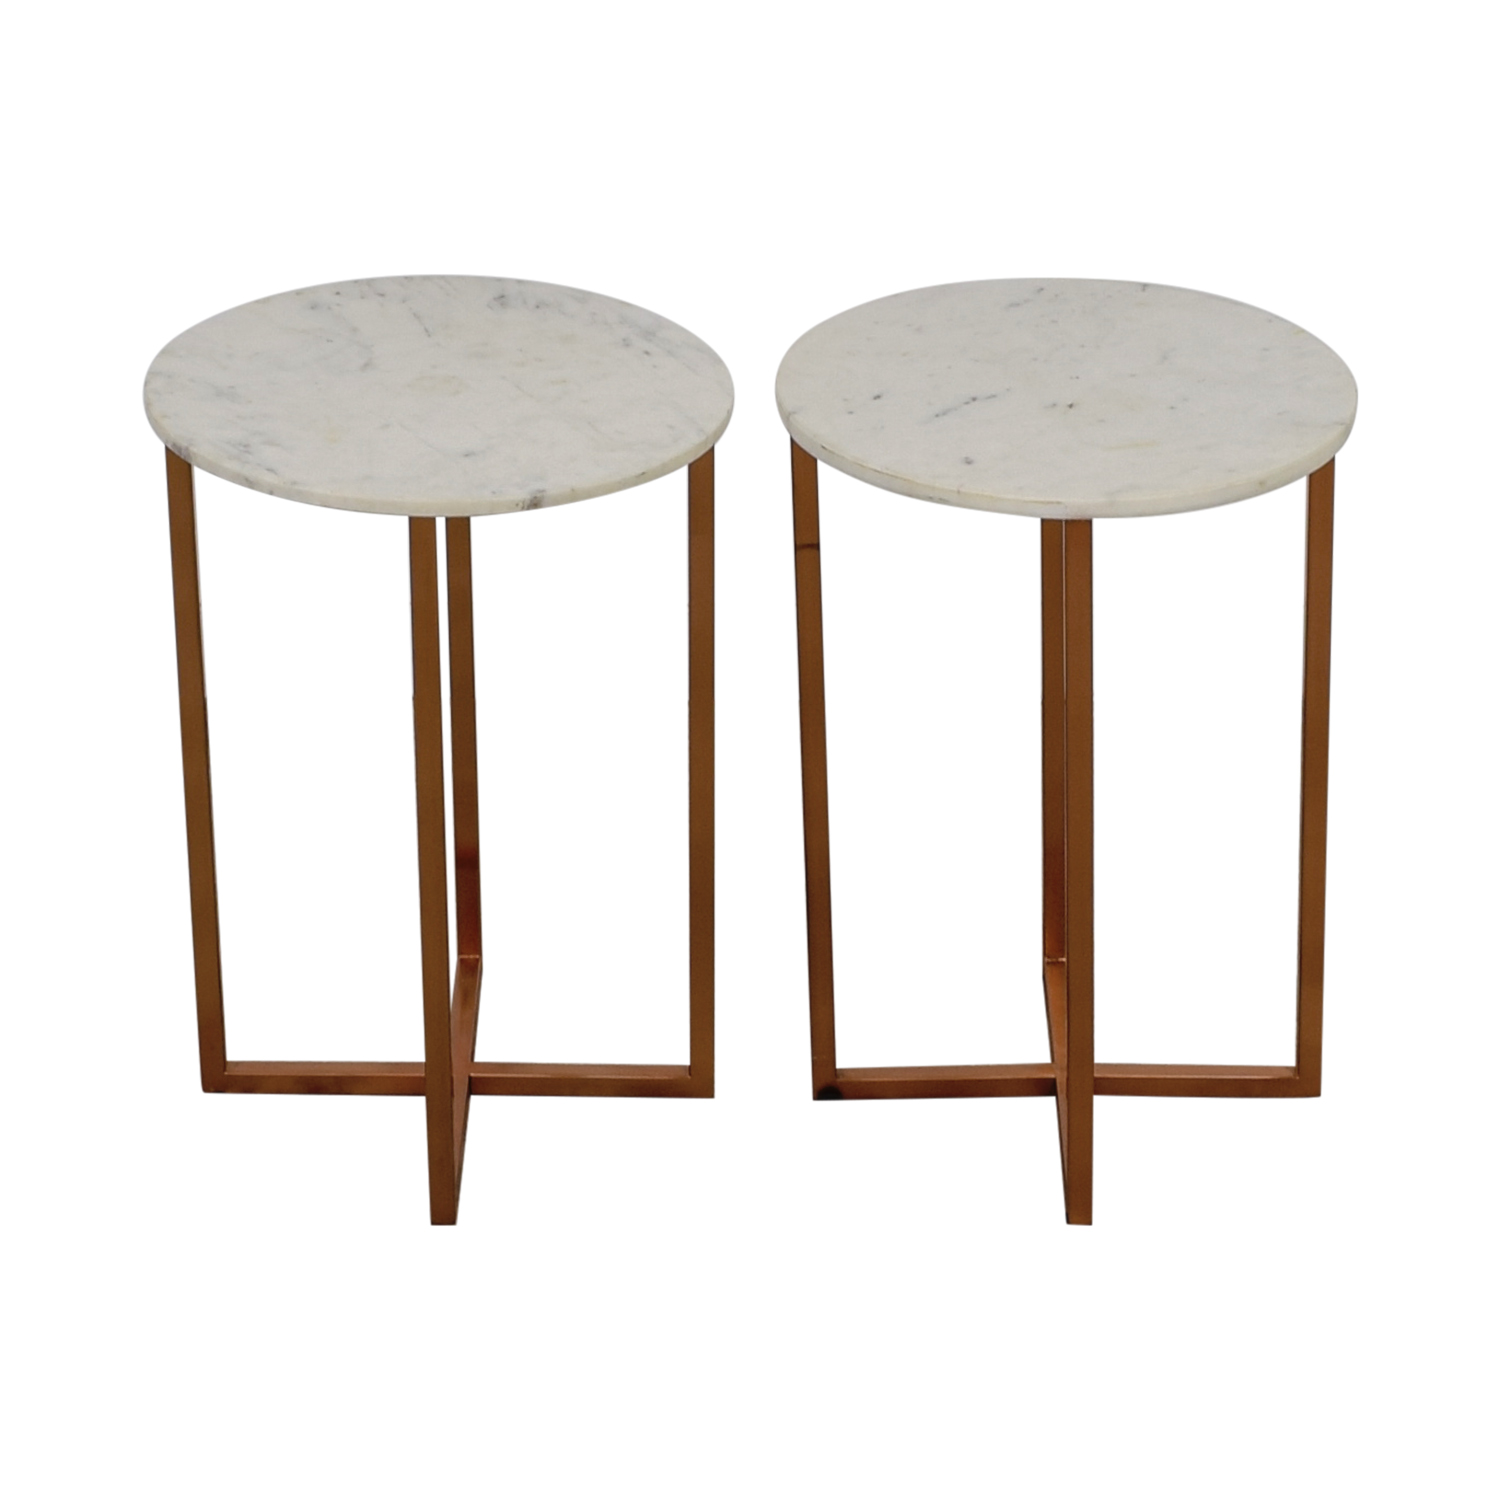 off marble top copper accent tables used table end white with drawer live edge brown threshold casual dining sets bbq grill animal print chair wood and iron coffee signy drum long